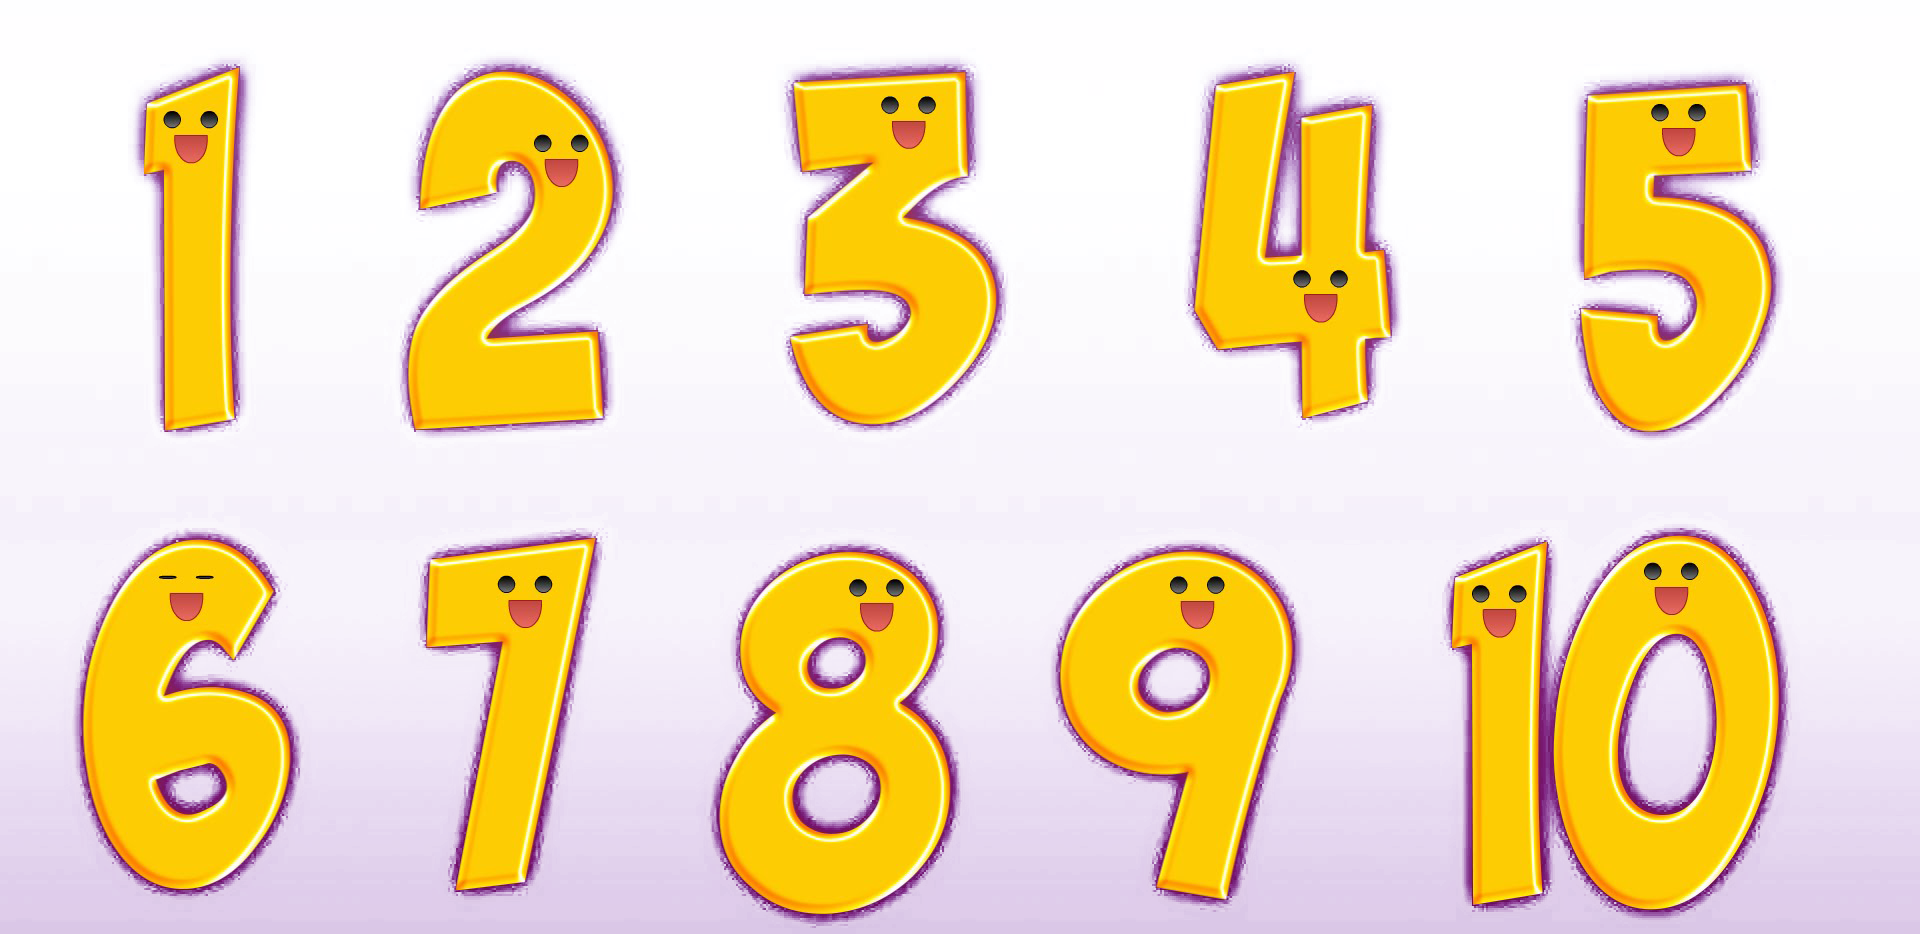 1 to 10 Numbers PNG Transparent Images.